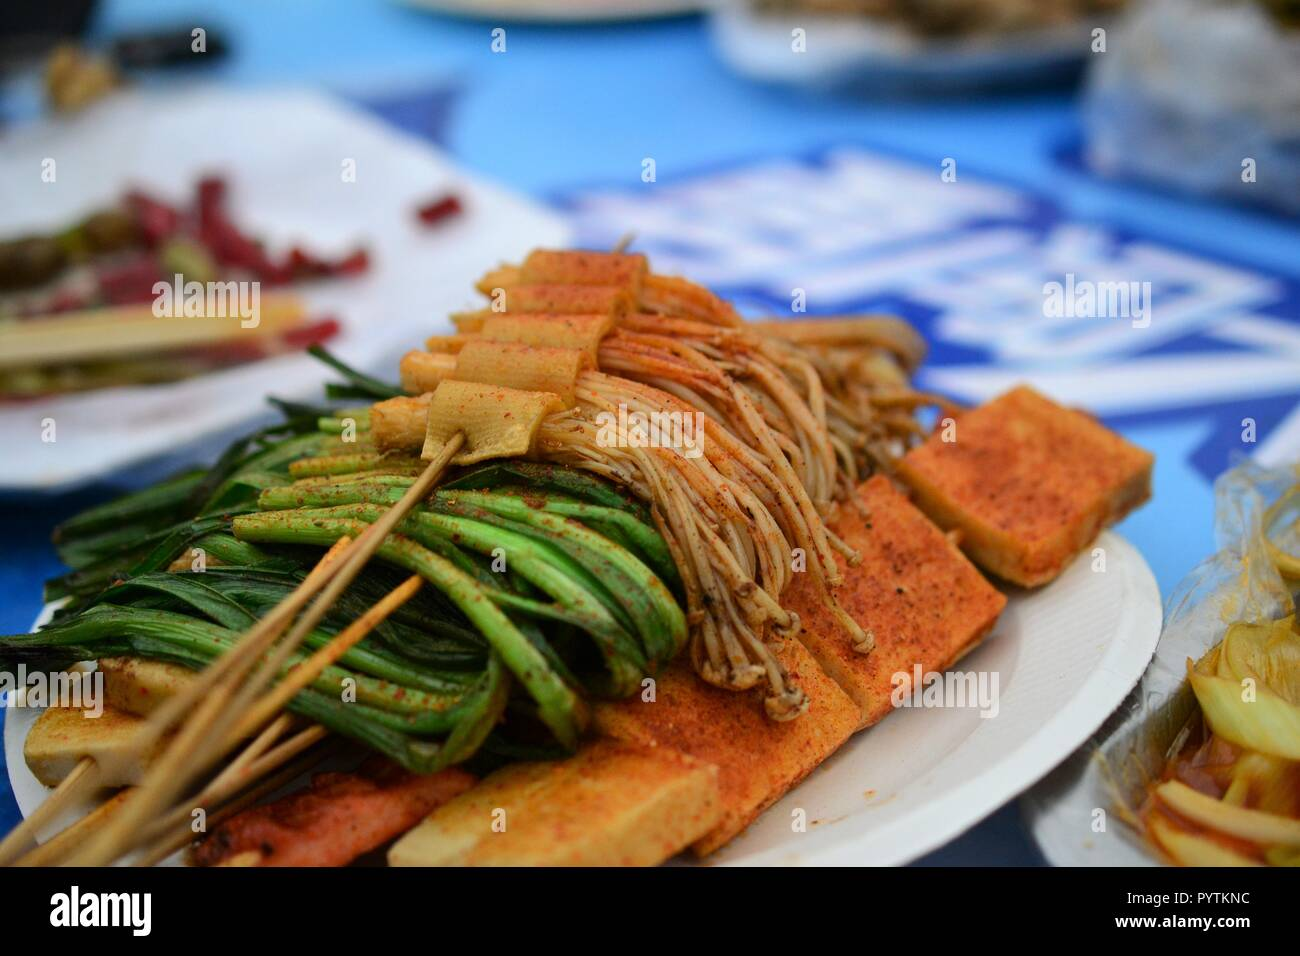 Xinjiang Cuisine Stock Photos Xinjiang Cuisine Stock Images Alamy